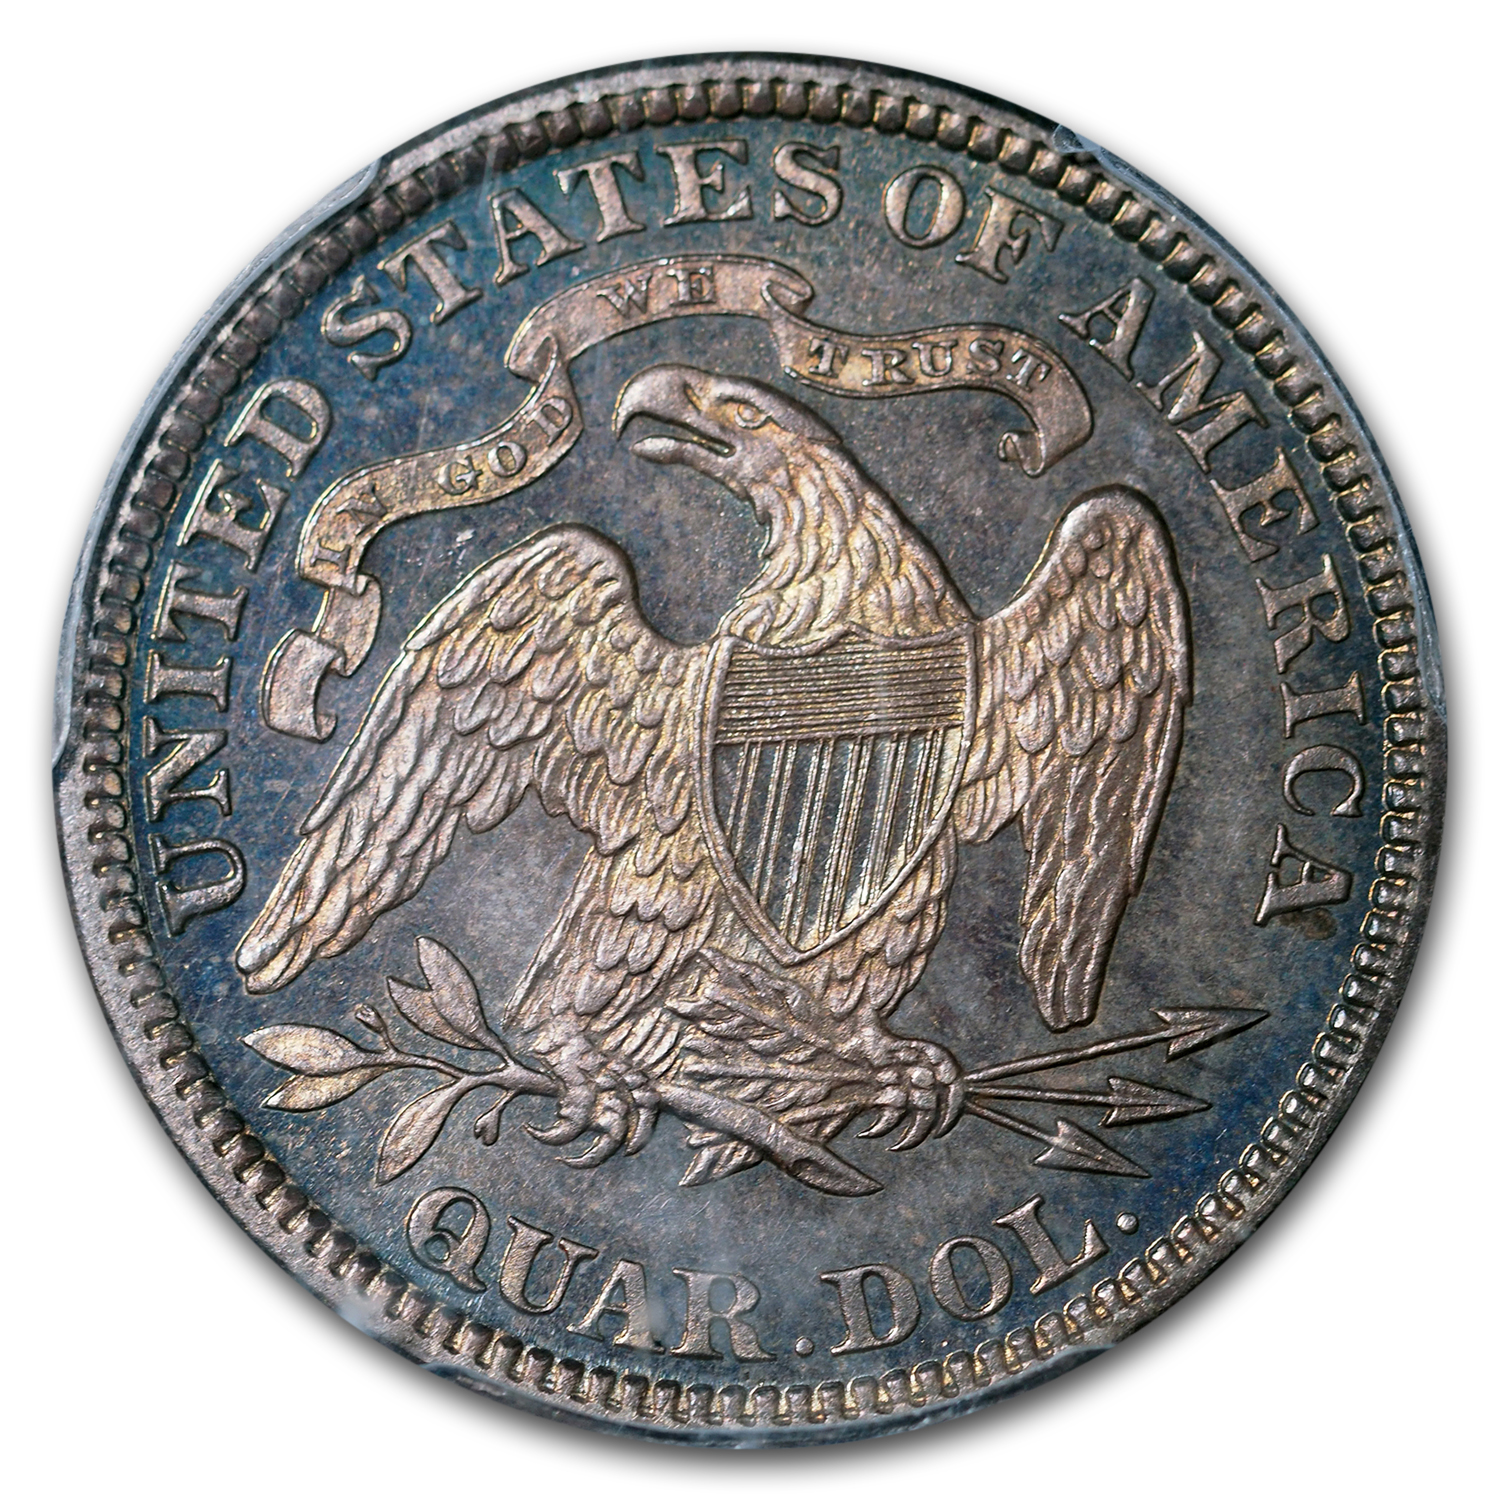 1885 Seated Liberty Quarter PR-66 PCGS